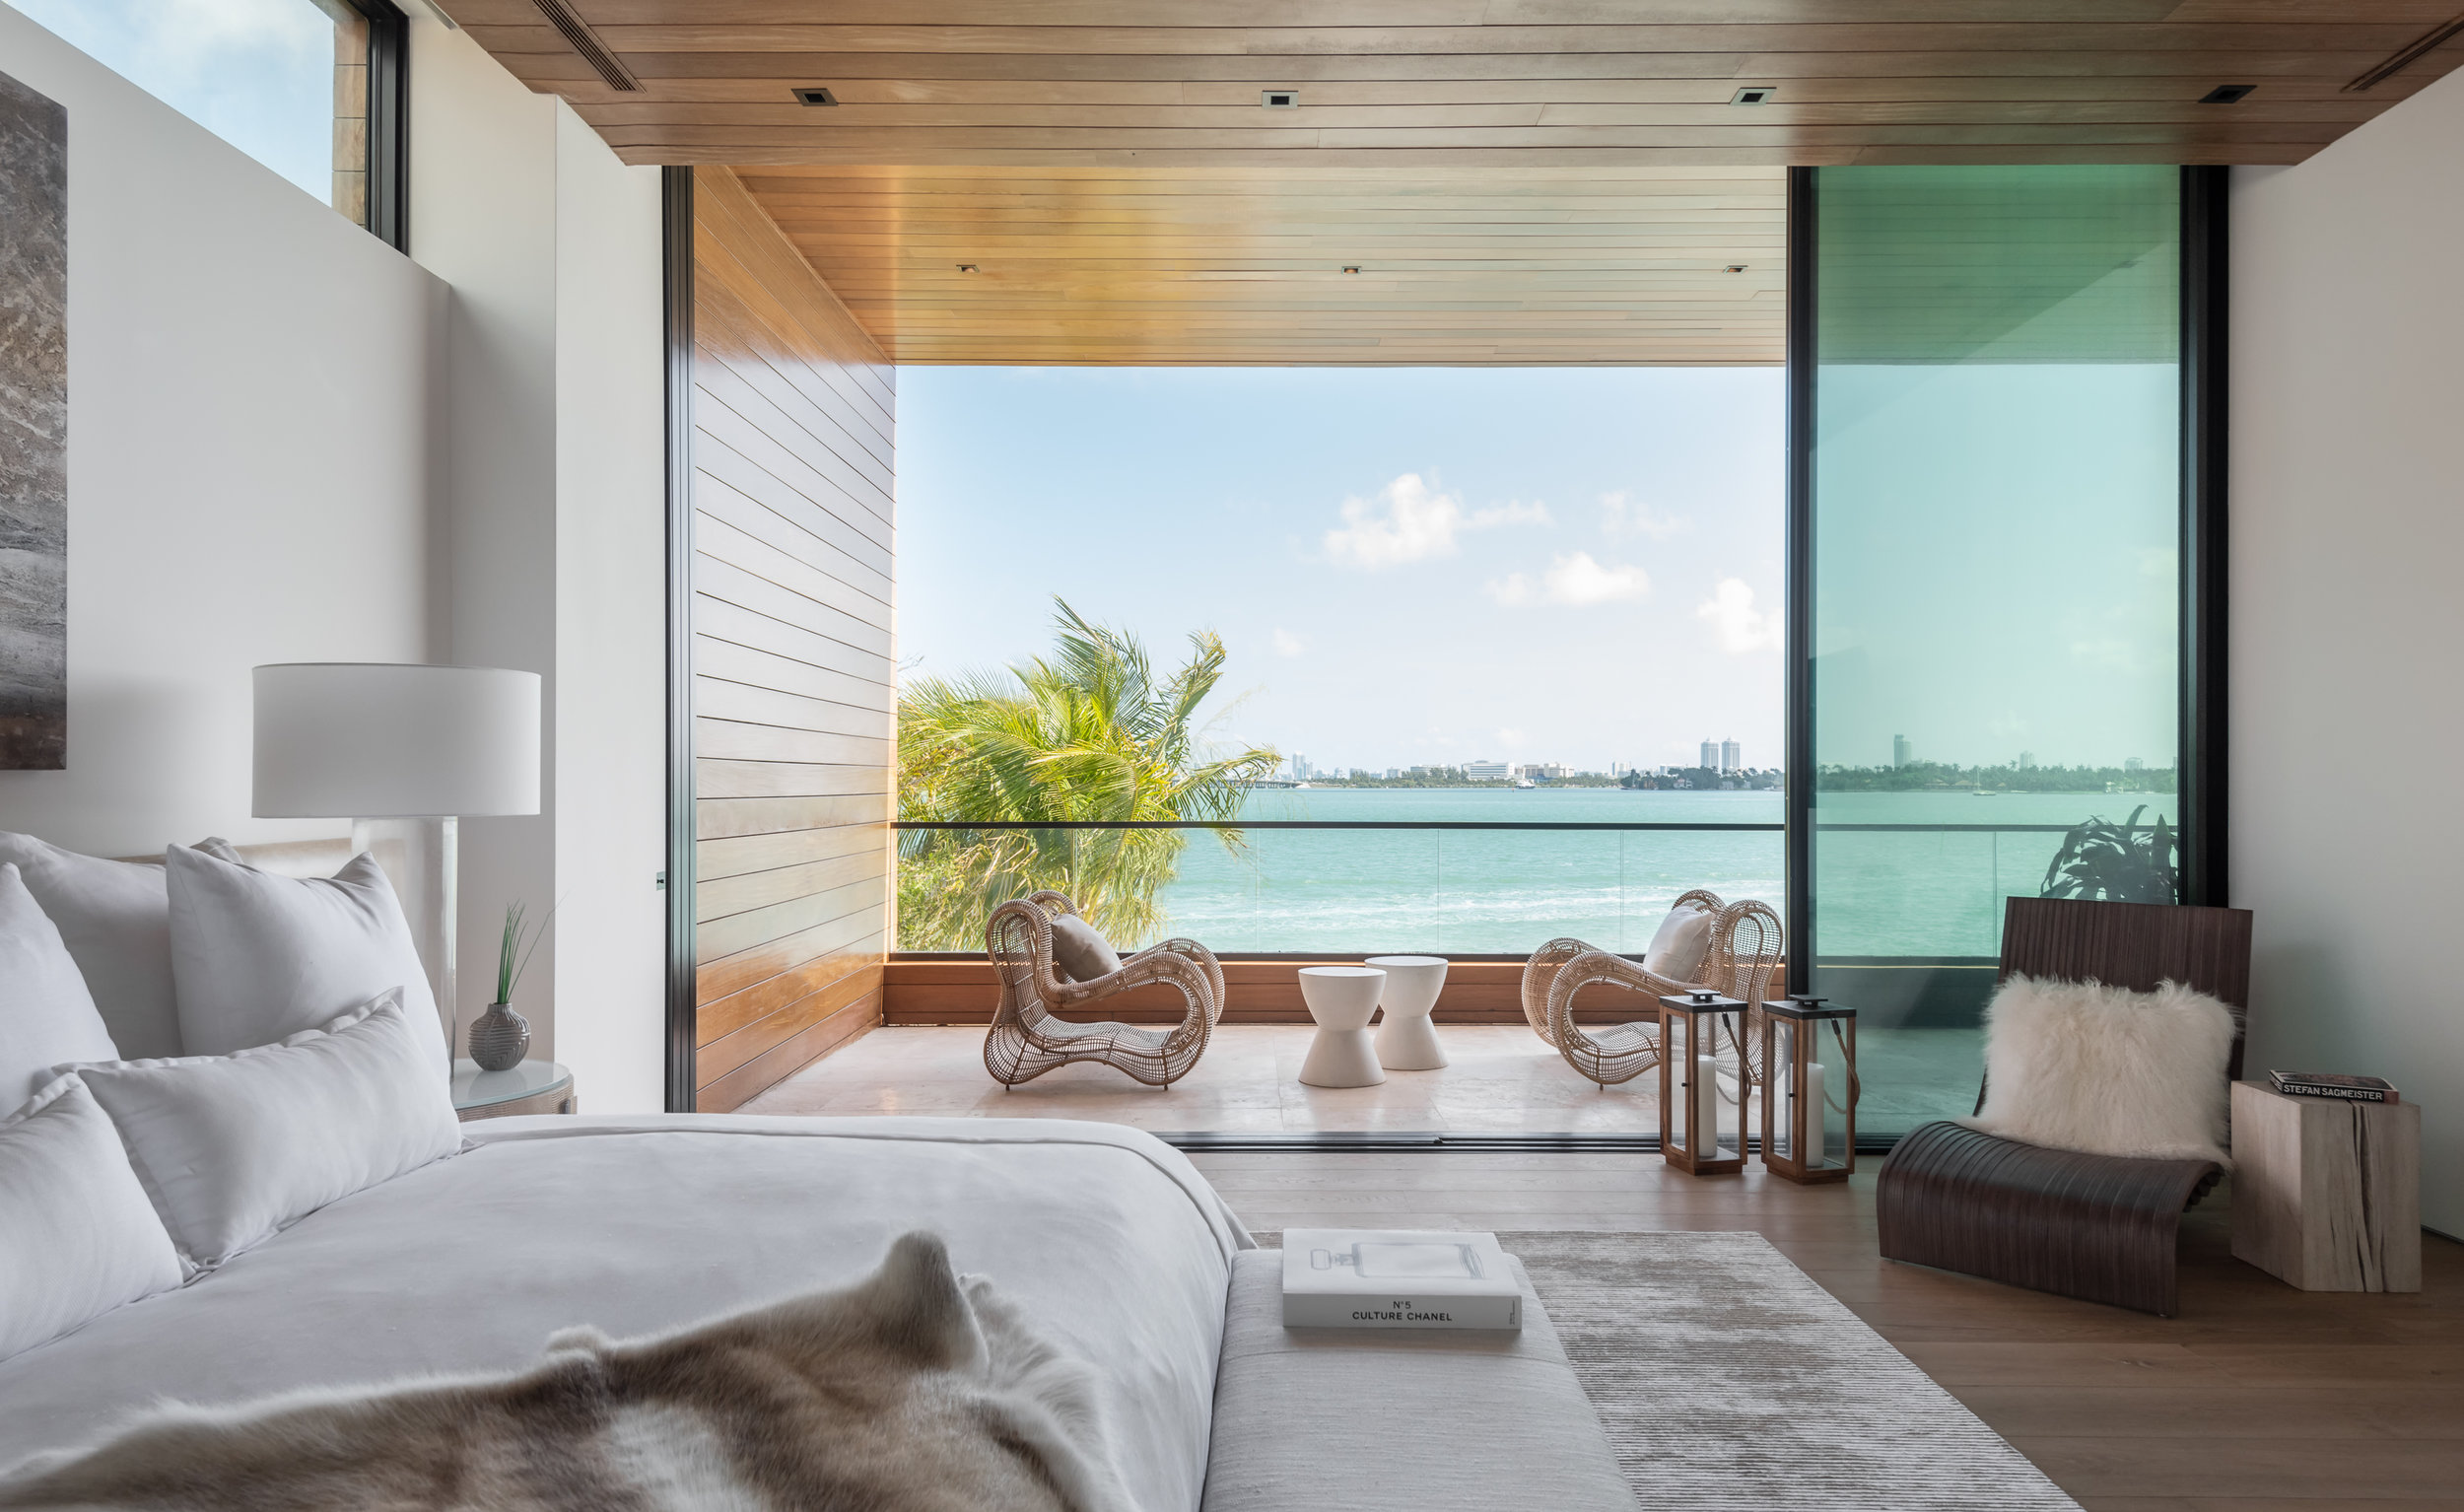 DiLido island private residence - choeff-levy-fischman